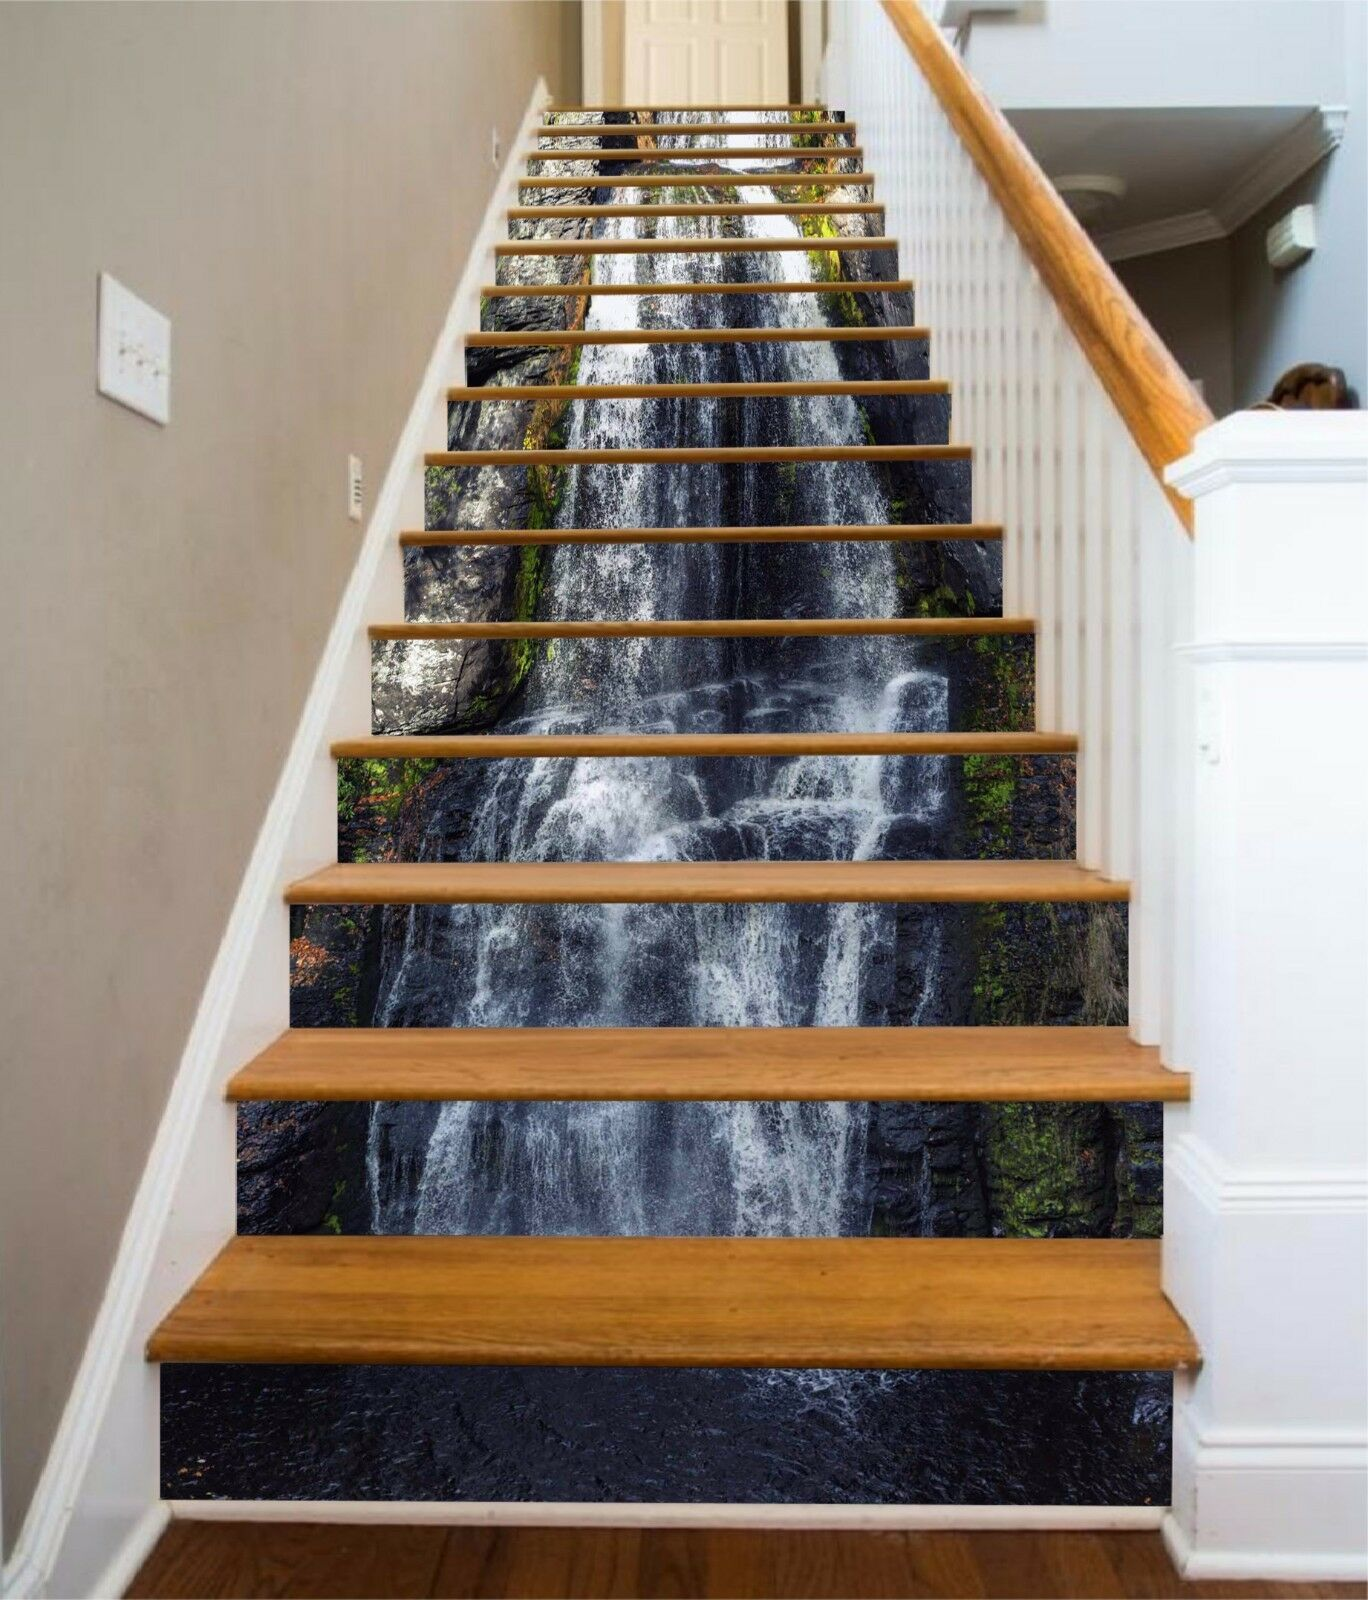 3D Falling Creek 61 Stair Risers Decoration Photo Mural Vinyl Decal Wallpaper AU